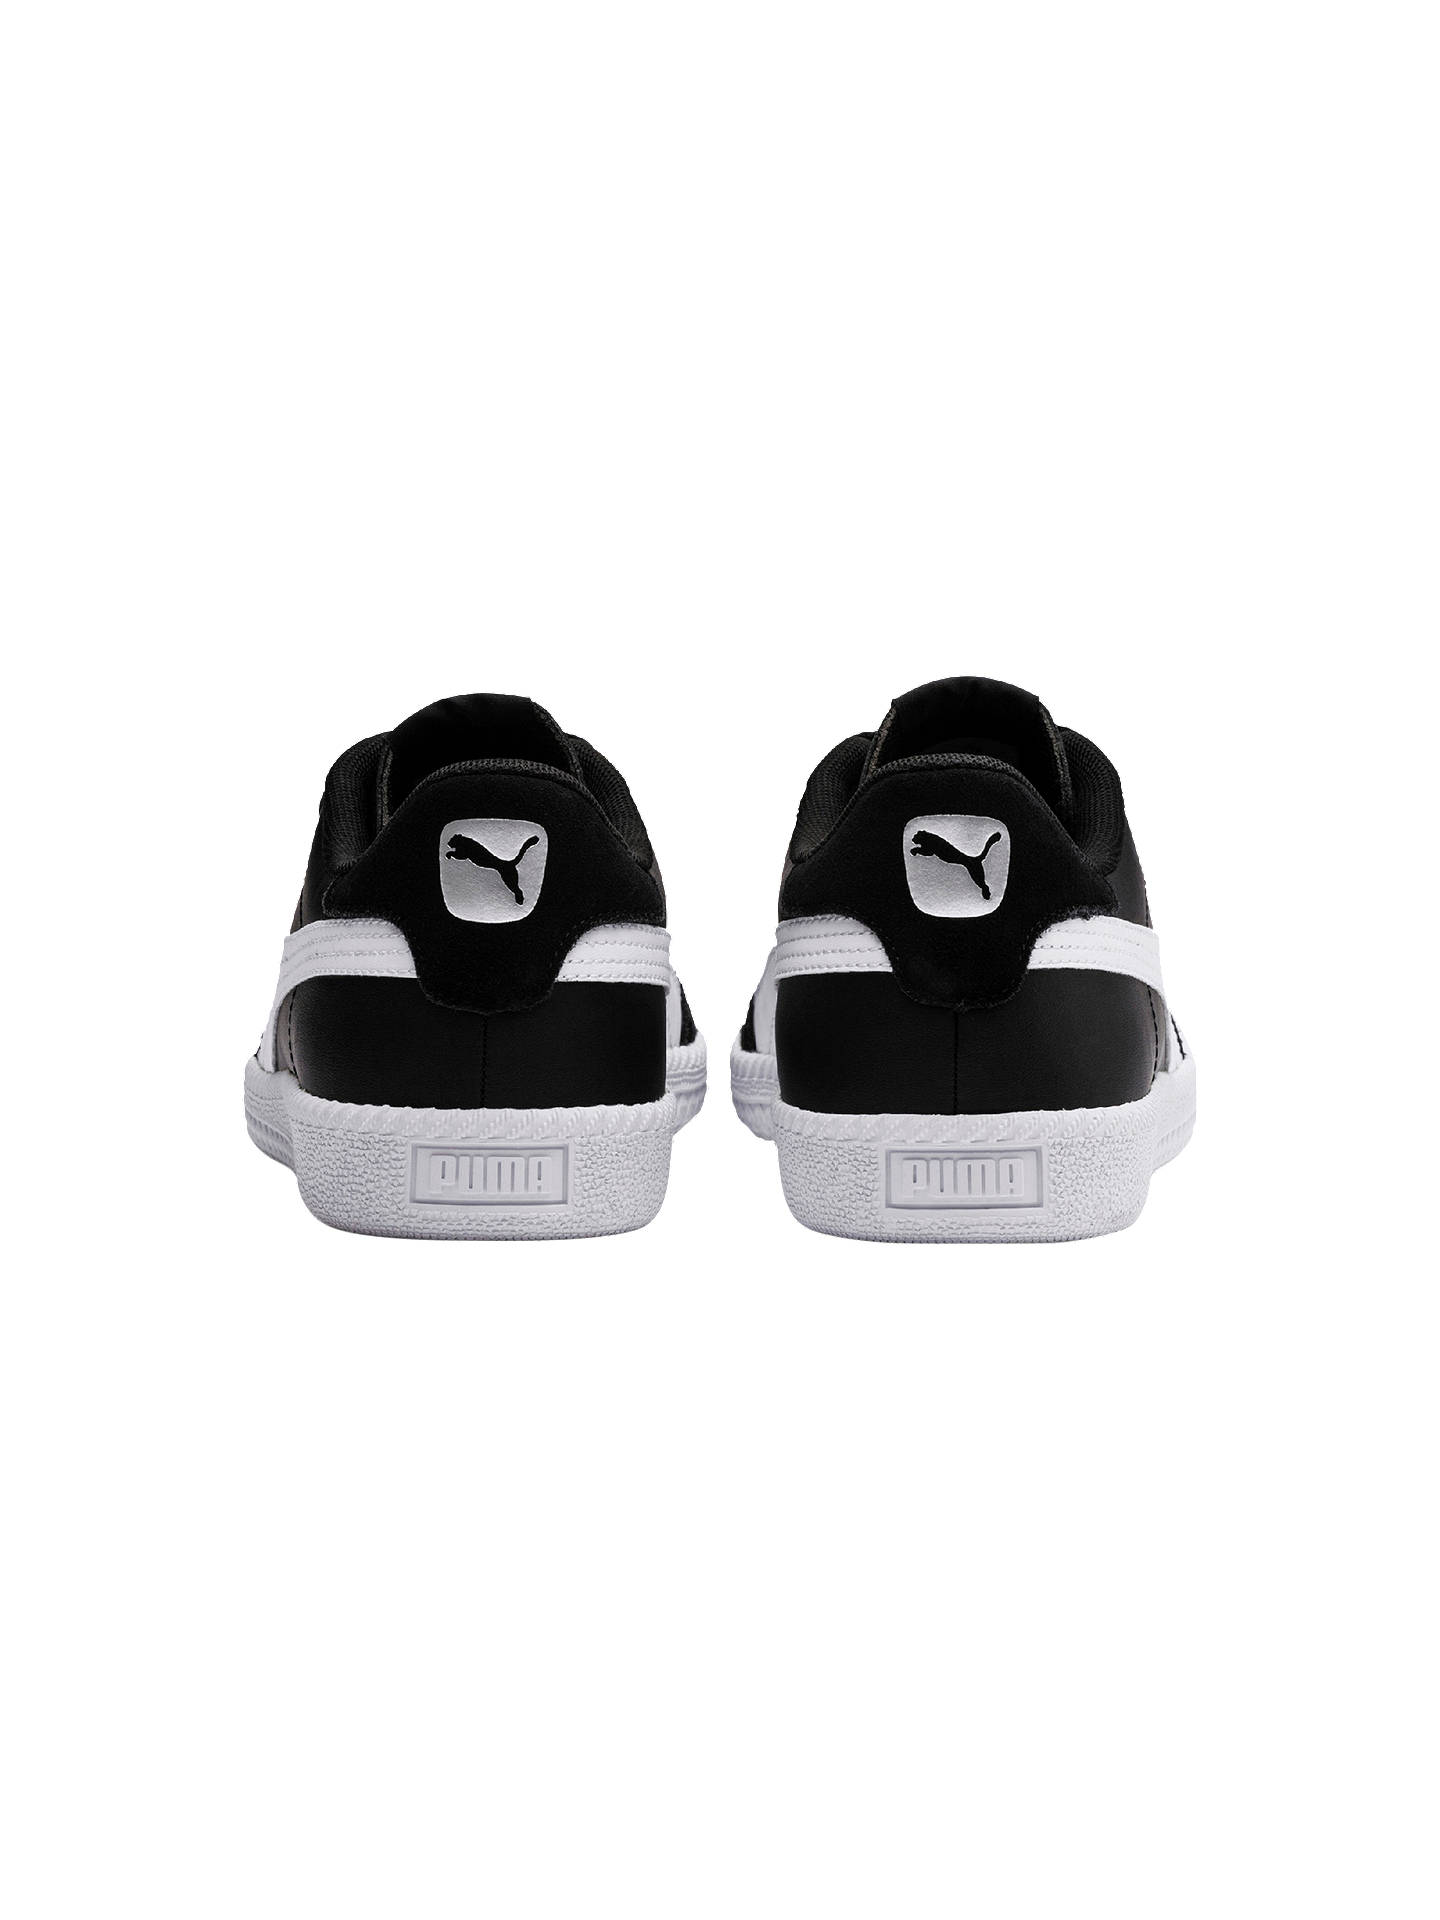 BuyPUMA Astro Cup SL Men's Trainers, Puma Black/Puma White, 9 Online at johnlewis.com